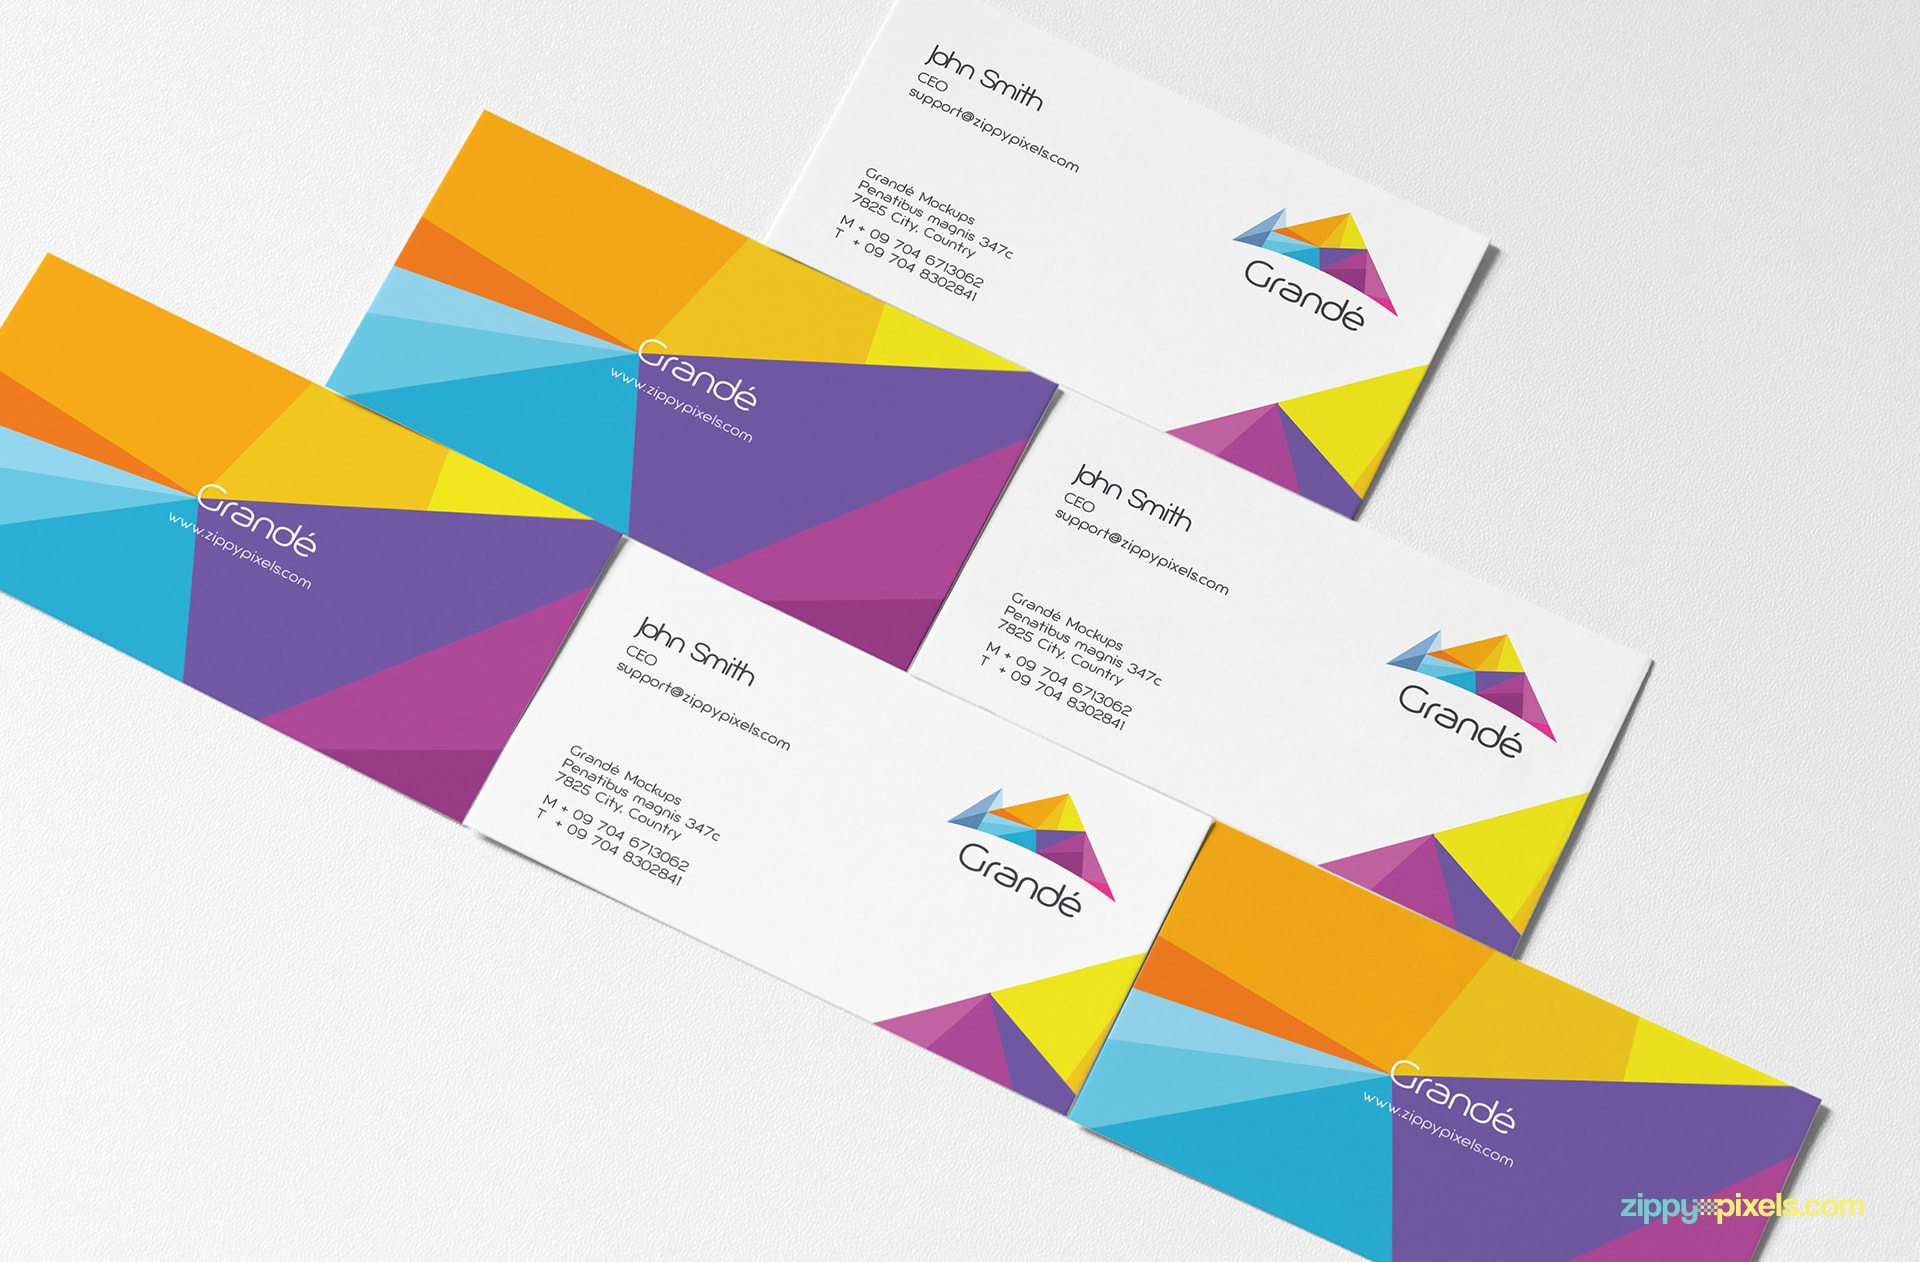 Pyramid of Business Cards for Brand Identity Mockup